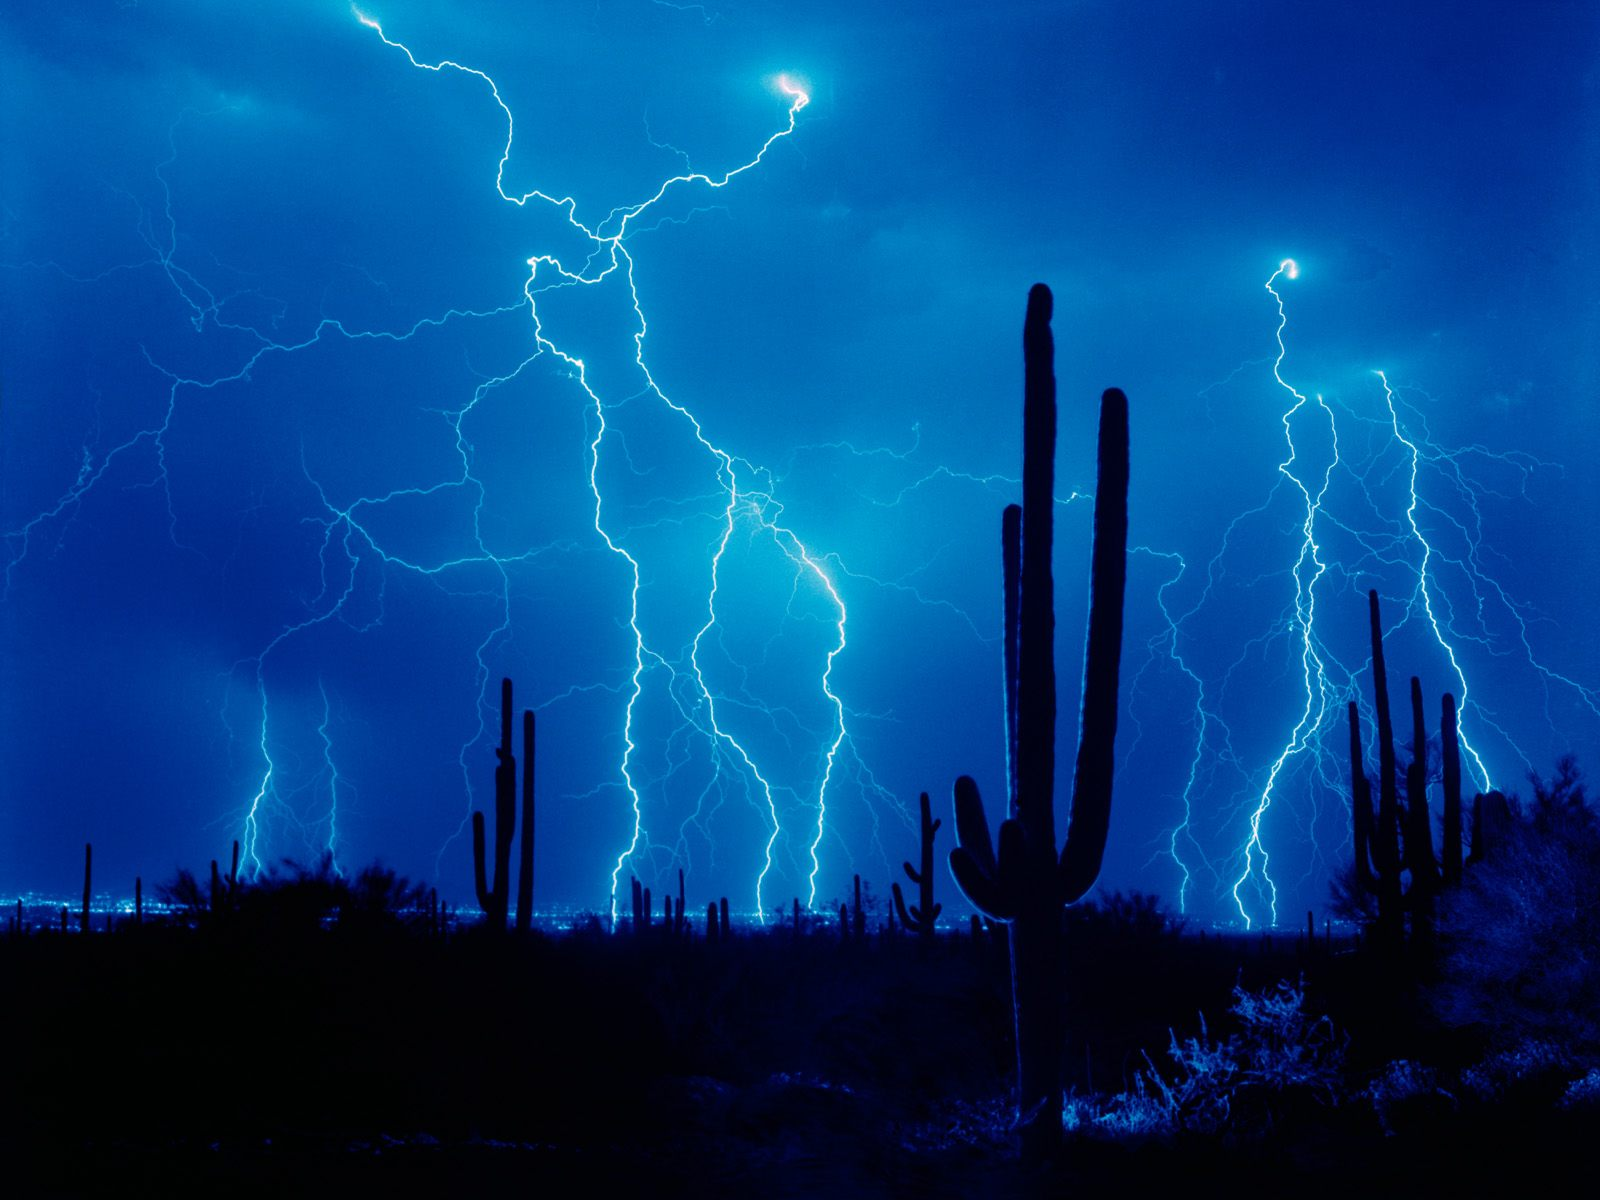 Desert Strike   Weather Wallpaper Image featuring Lightning 1600x1200